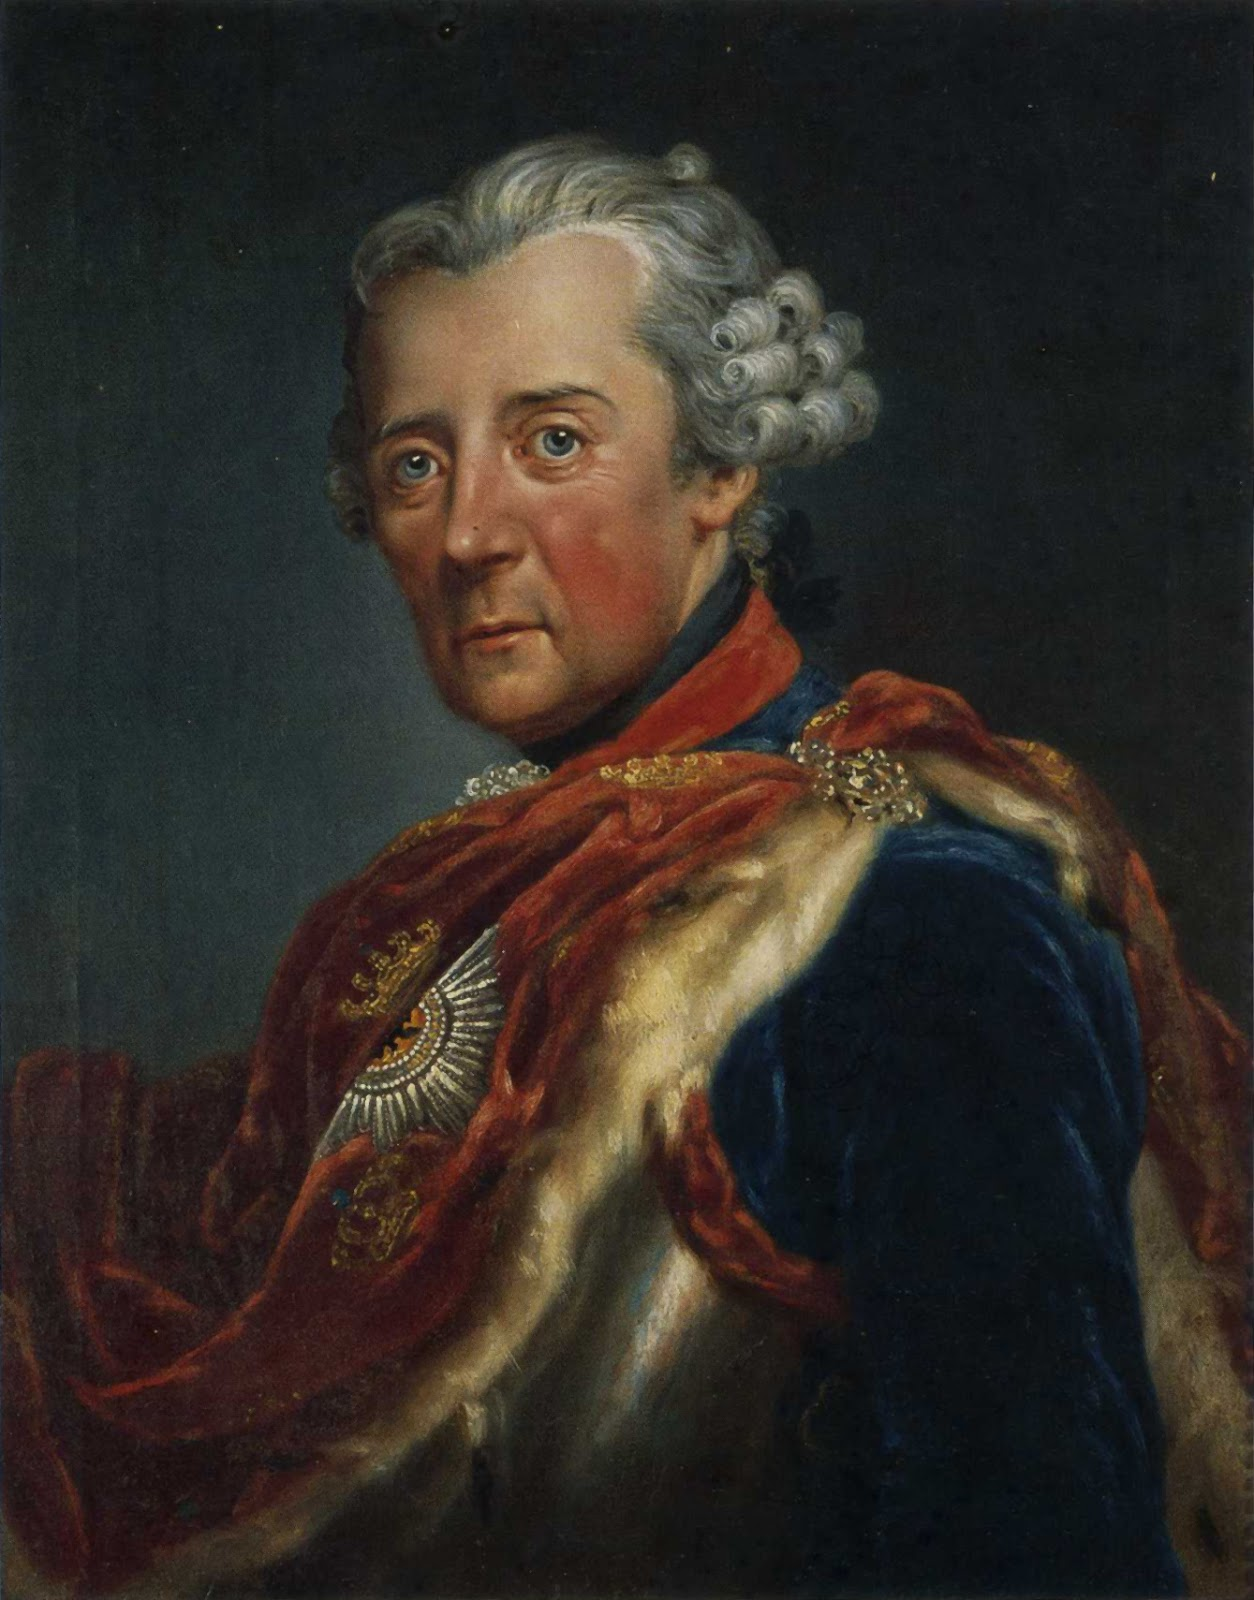 Frederick the Great of Prussia issued a statement in 1777 encouraging Prussians to drink more beer not coffee with their breakfast.